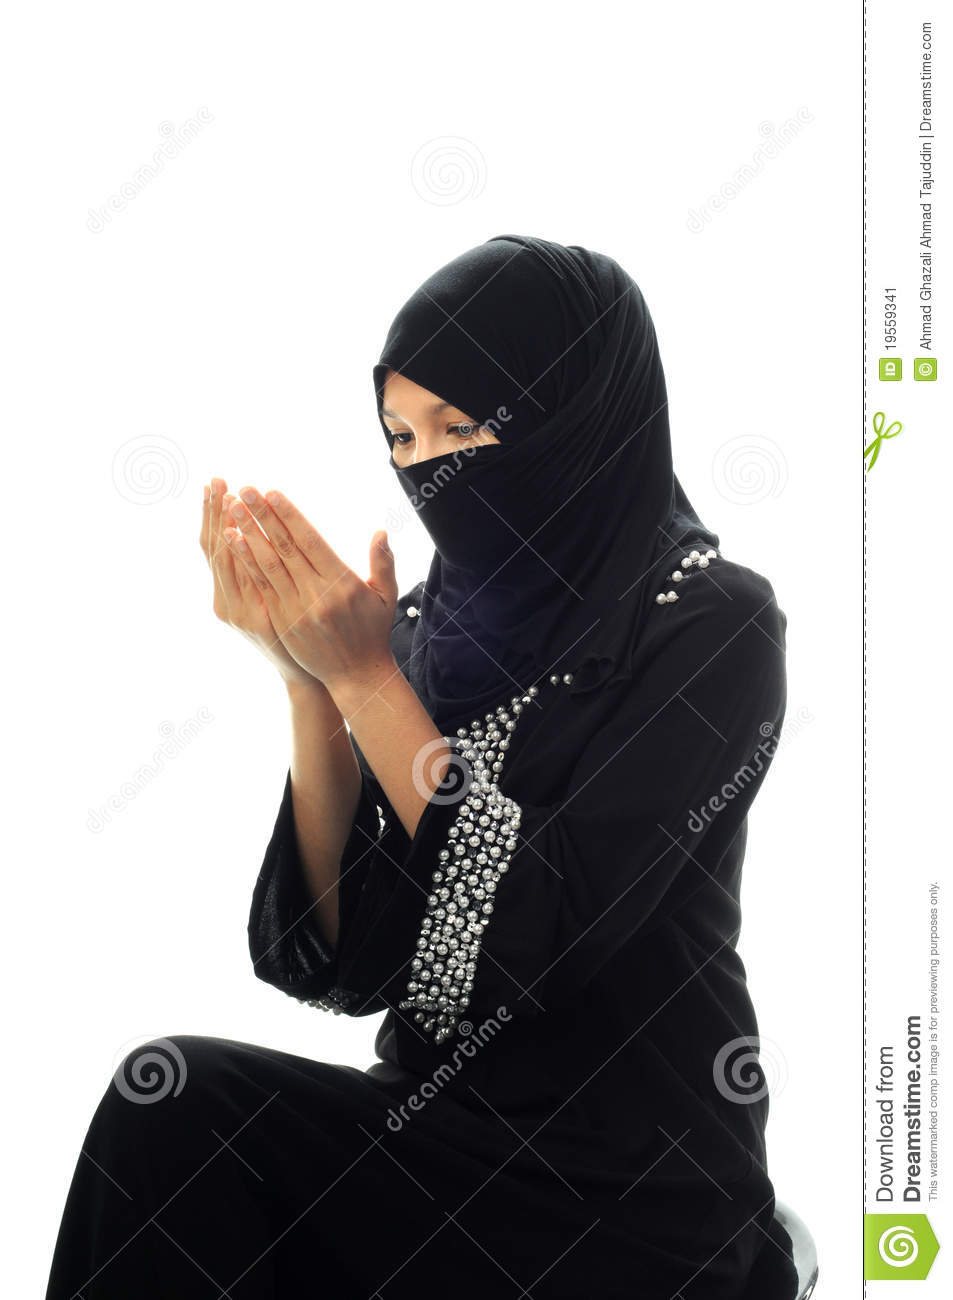 muslim single women in big bay Vermontville's best 100% free muslim girls dating site meet thousands of single muslim women in vermontville with mingle2's free personal ads and chat rooms our network of muslim women in vermontville is the perfect place to make friends or find an muslim girlfriend in vermontville.